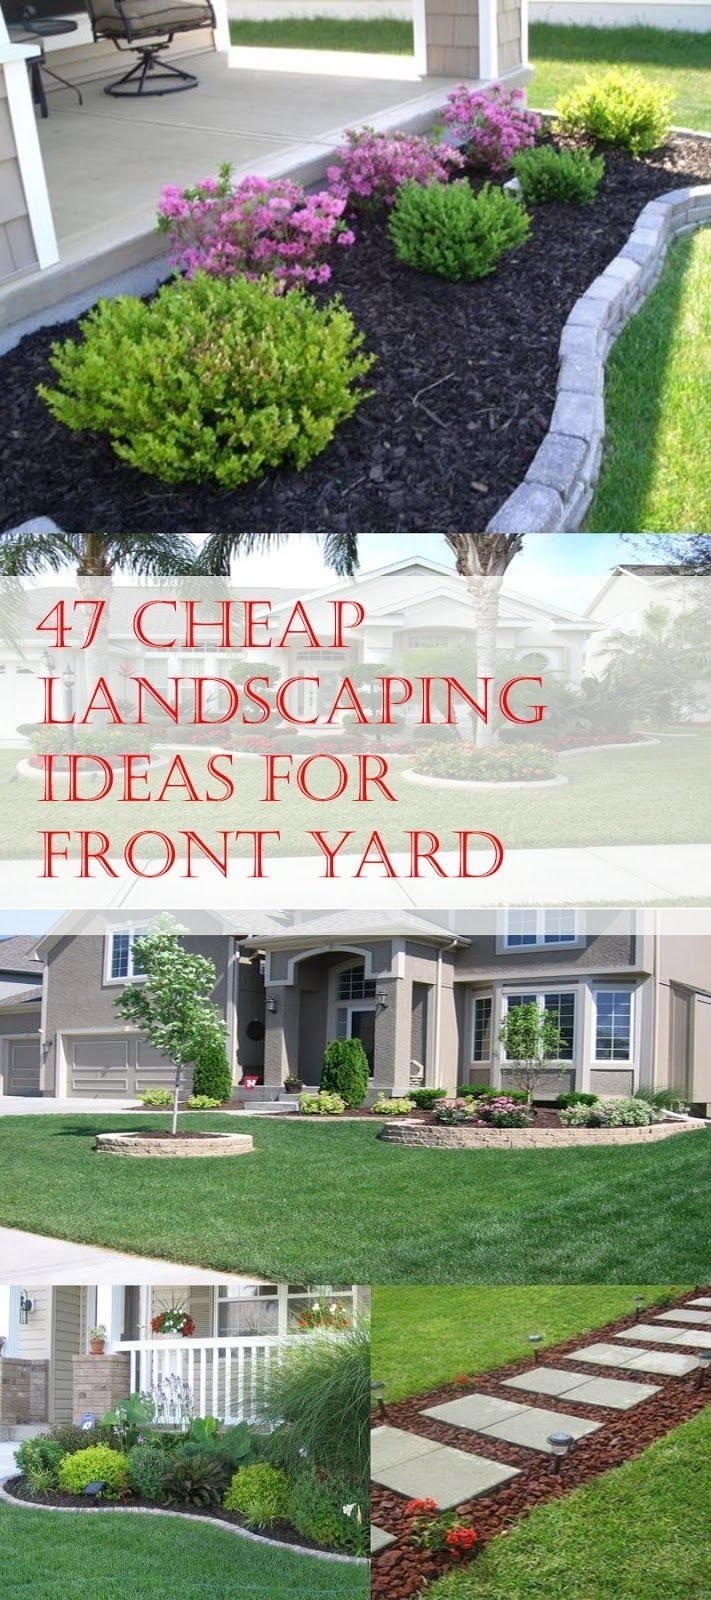 10 Spectacular Front Yard Landscaping Ideas On A Budget 47 cheap landscaping ideas for front yard cheap landscaping ideas 5 2020